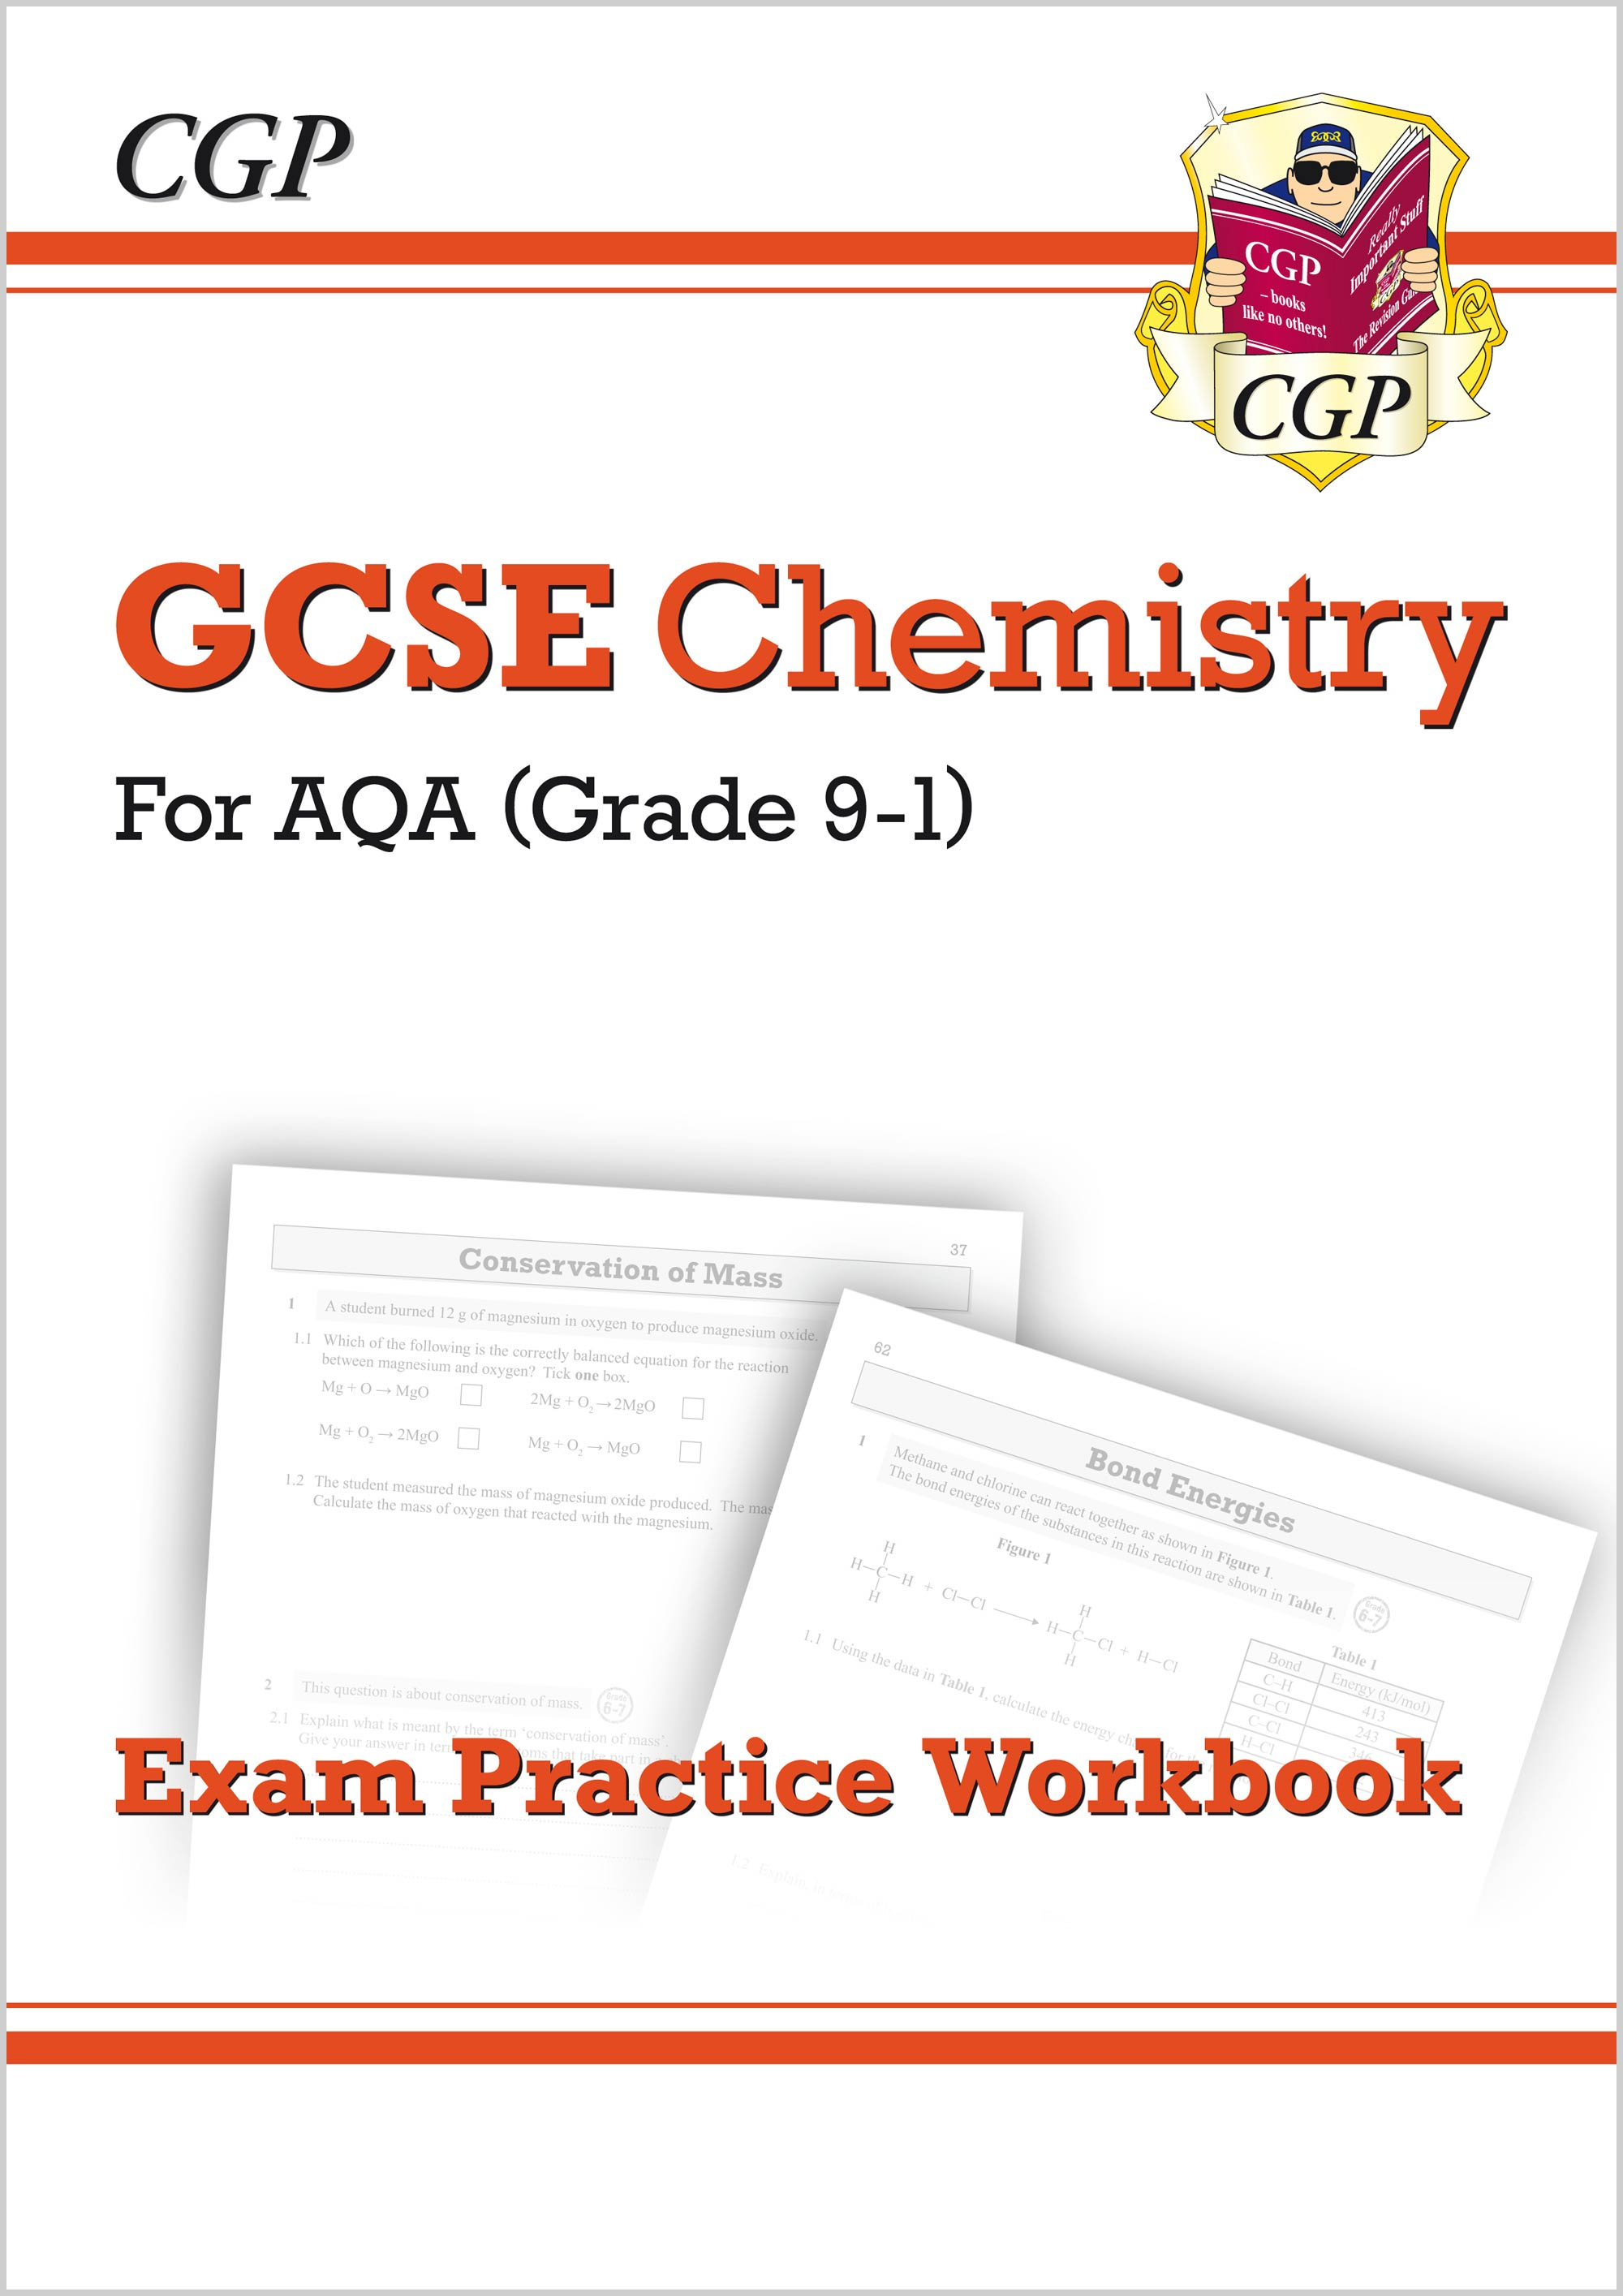 Grade 9-1 GCSE Chemistry: AQA Exam Practice Workbook - Higher